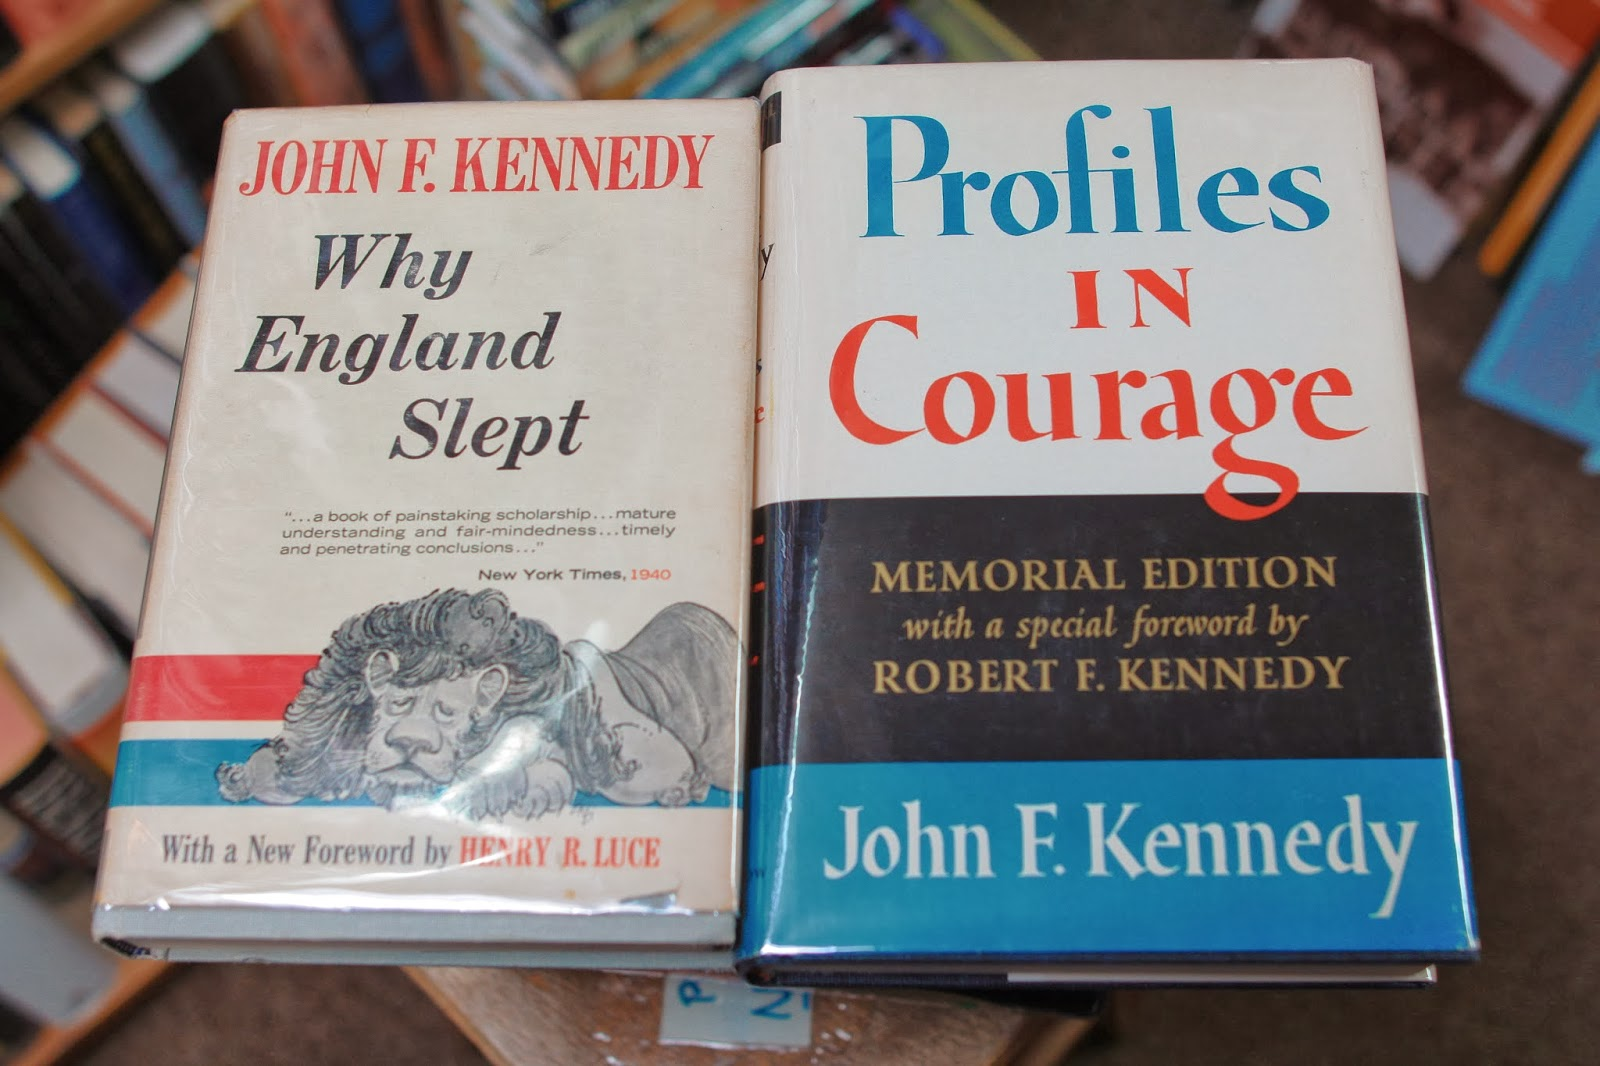 jfk thesis why england slept Profiles in courage was made into a television series of the same name john f kennedy is the only man in history that i know who won why england slept.